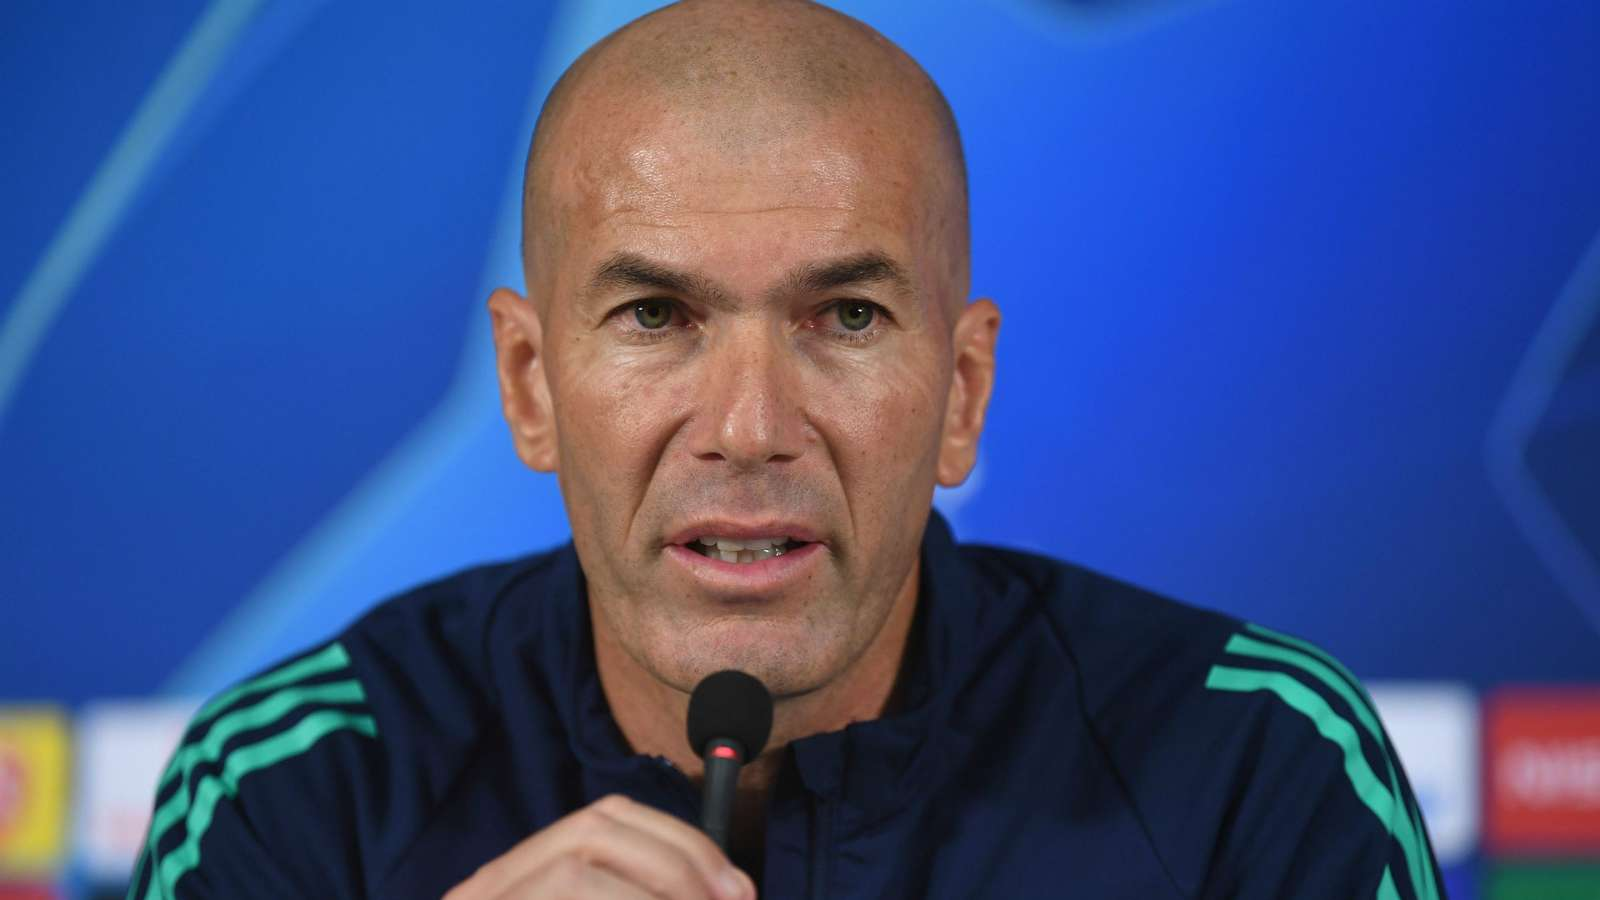 Zidane: Mbappé our opponent and our team improved a lot after losing to them